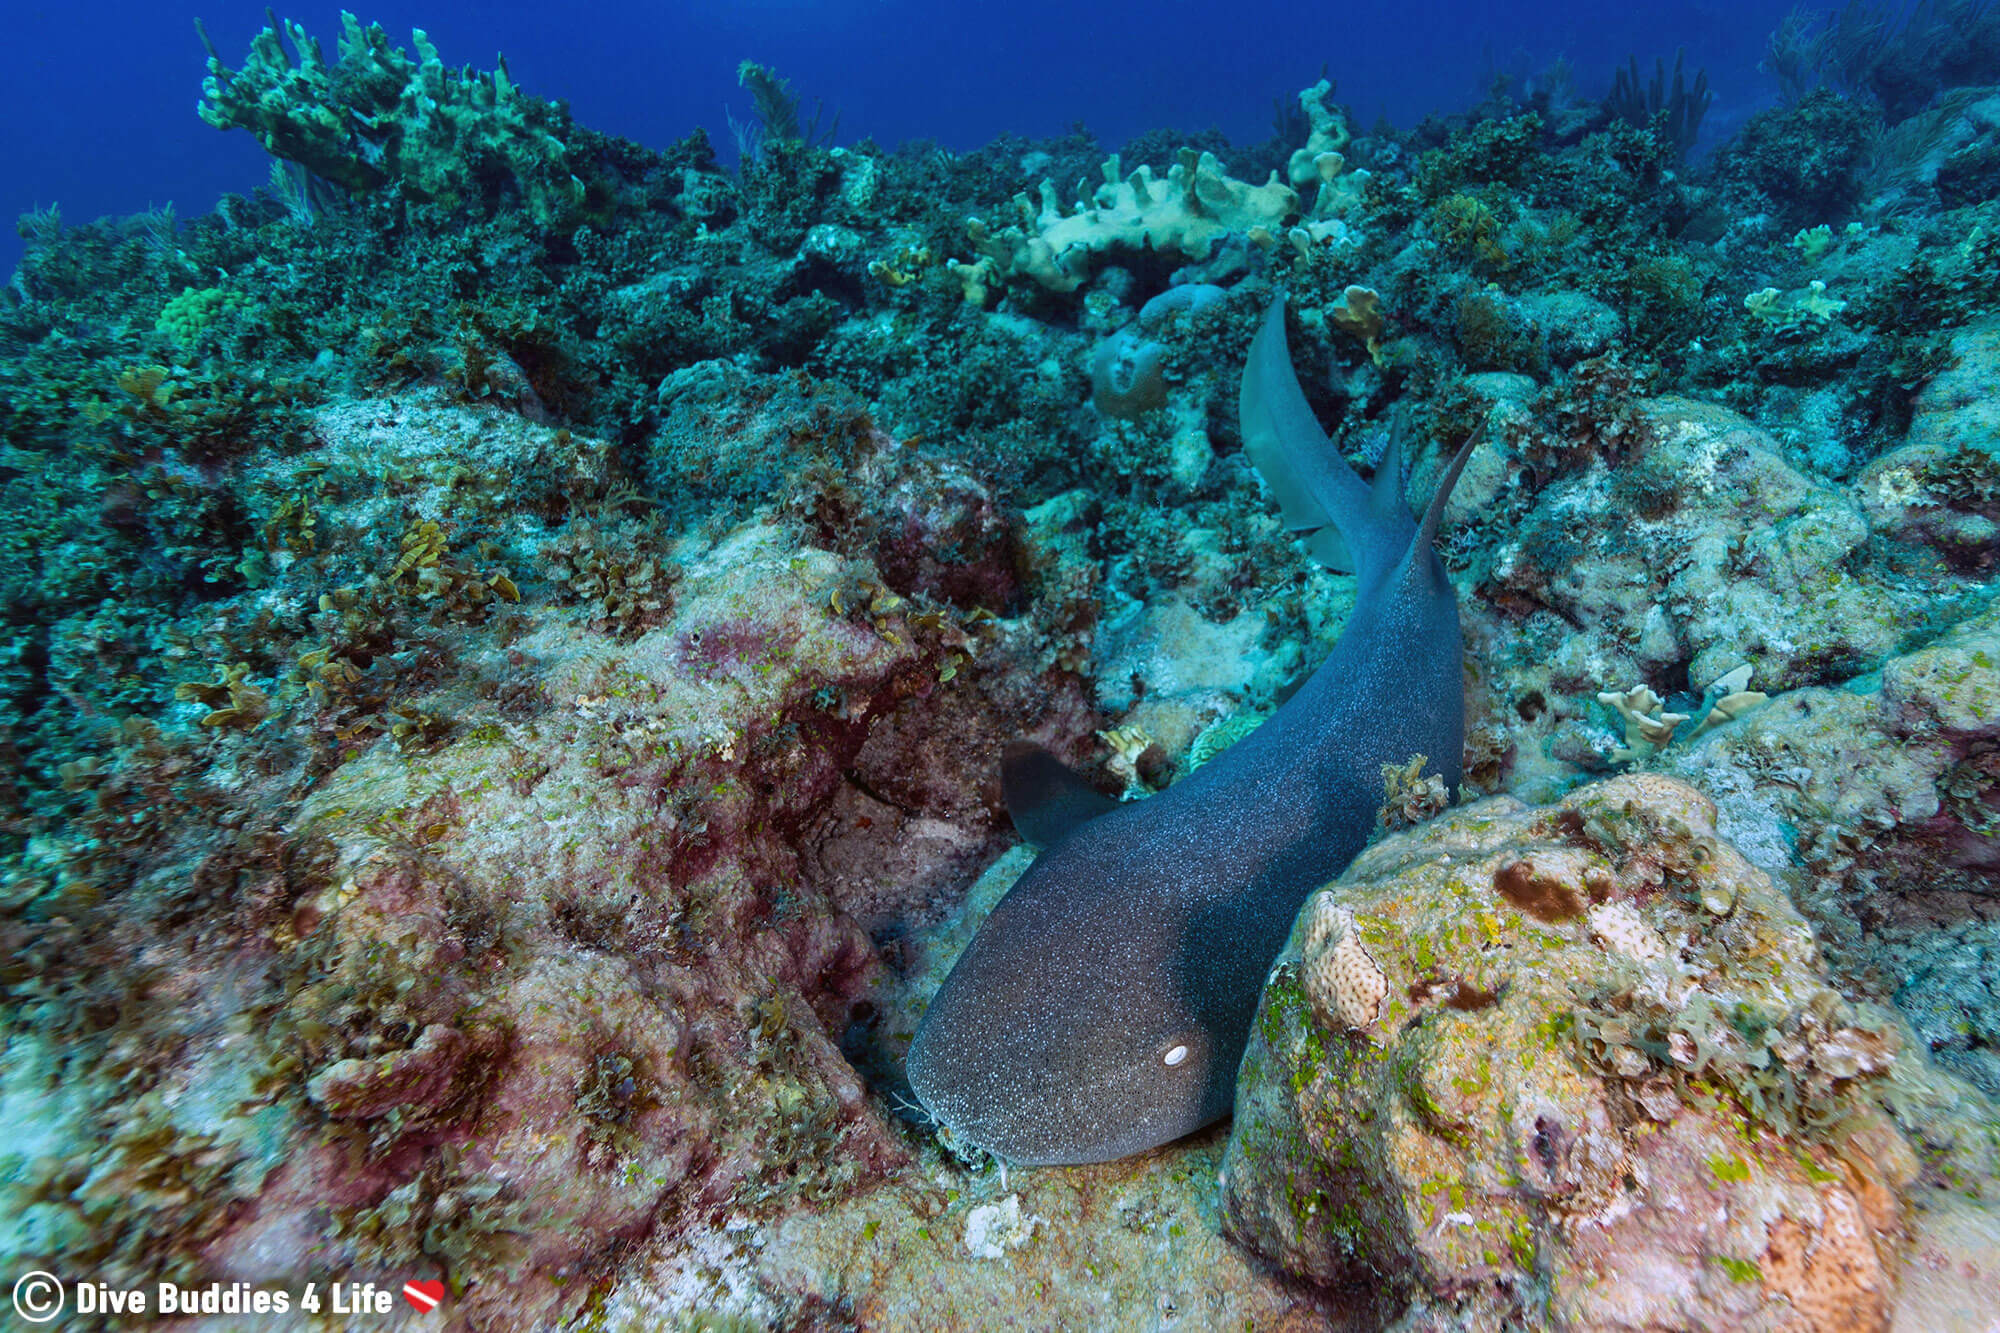 A Nurse Shark Wedged In The Coral At Baby Beach Dive Site In Bonaire, Dutch Caribbean